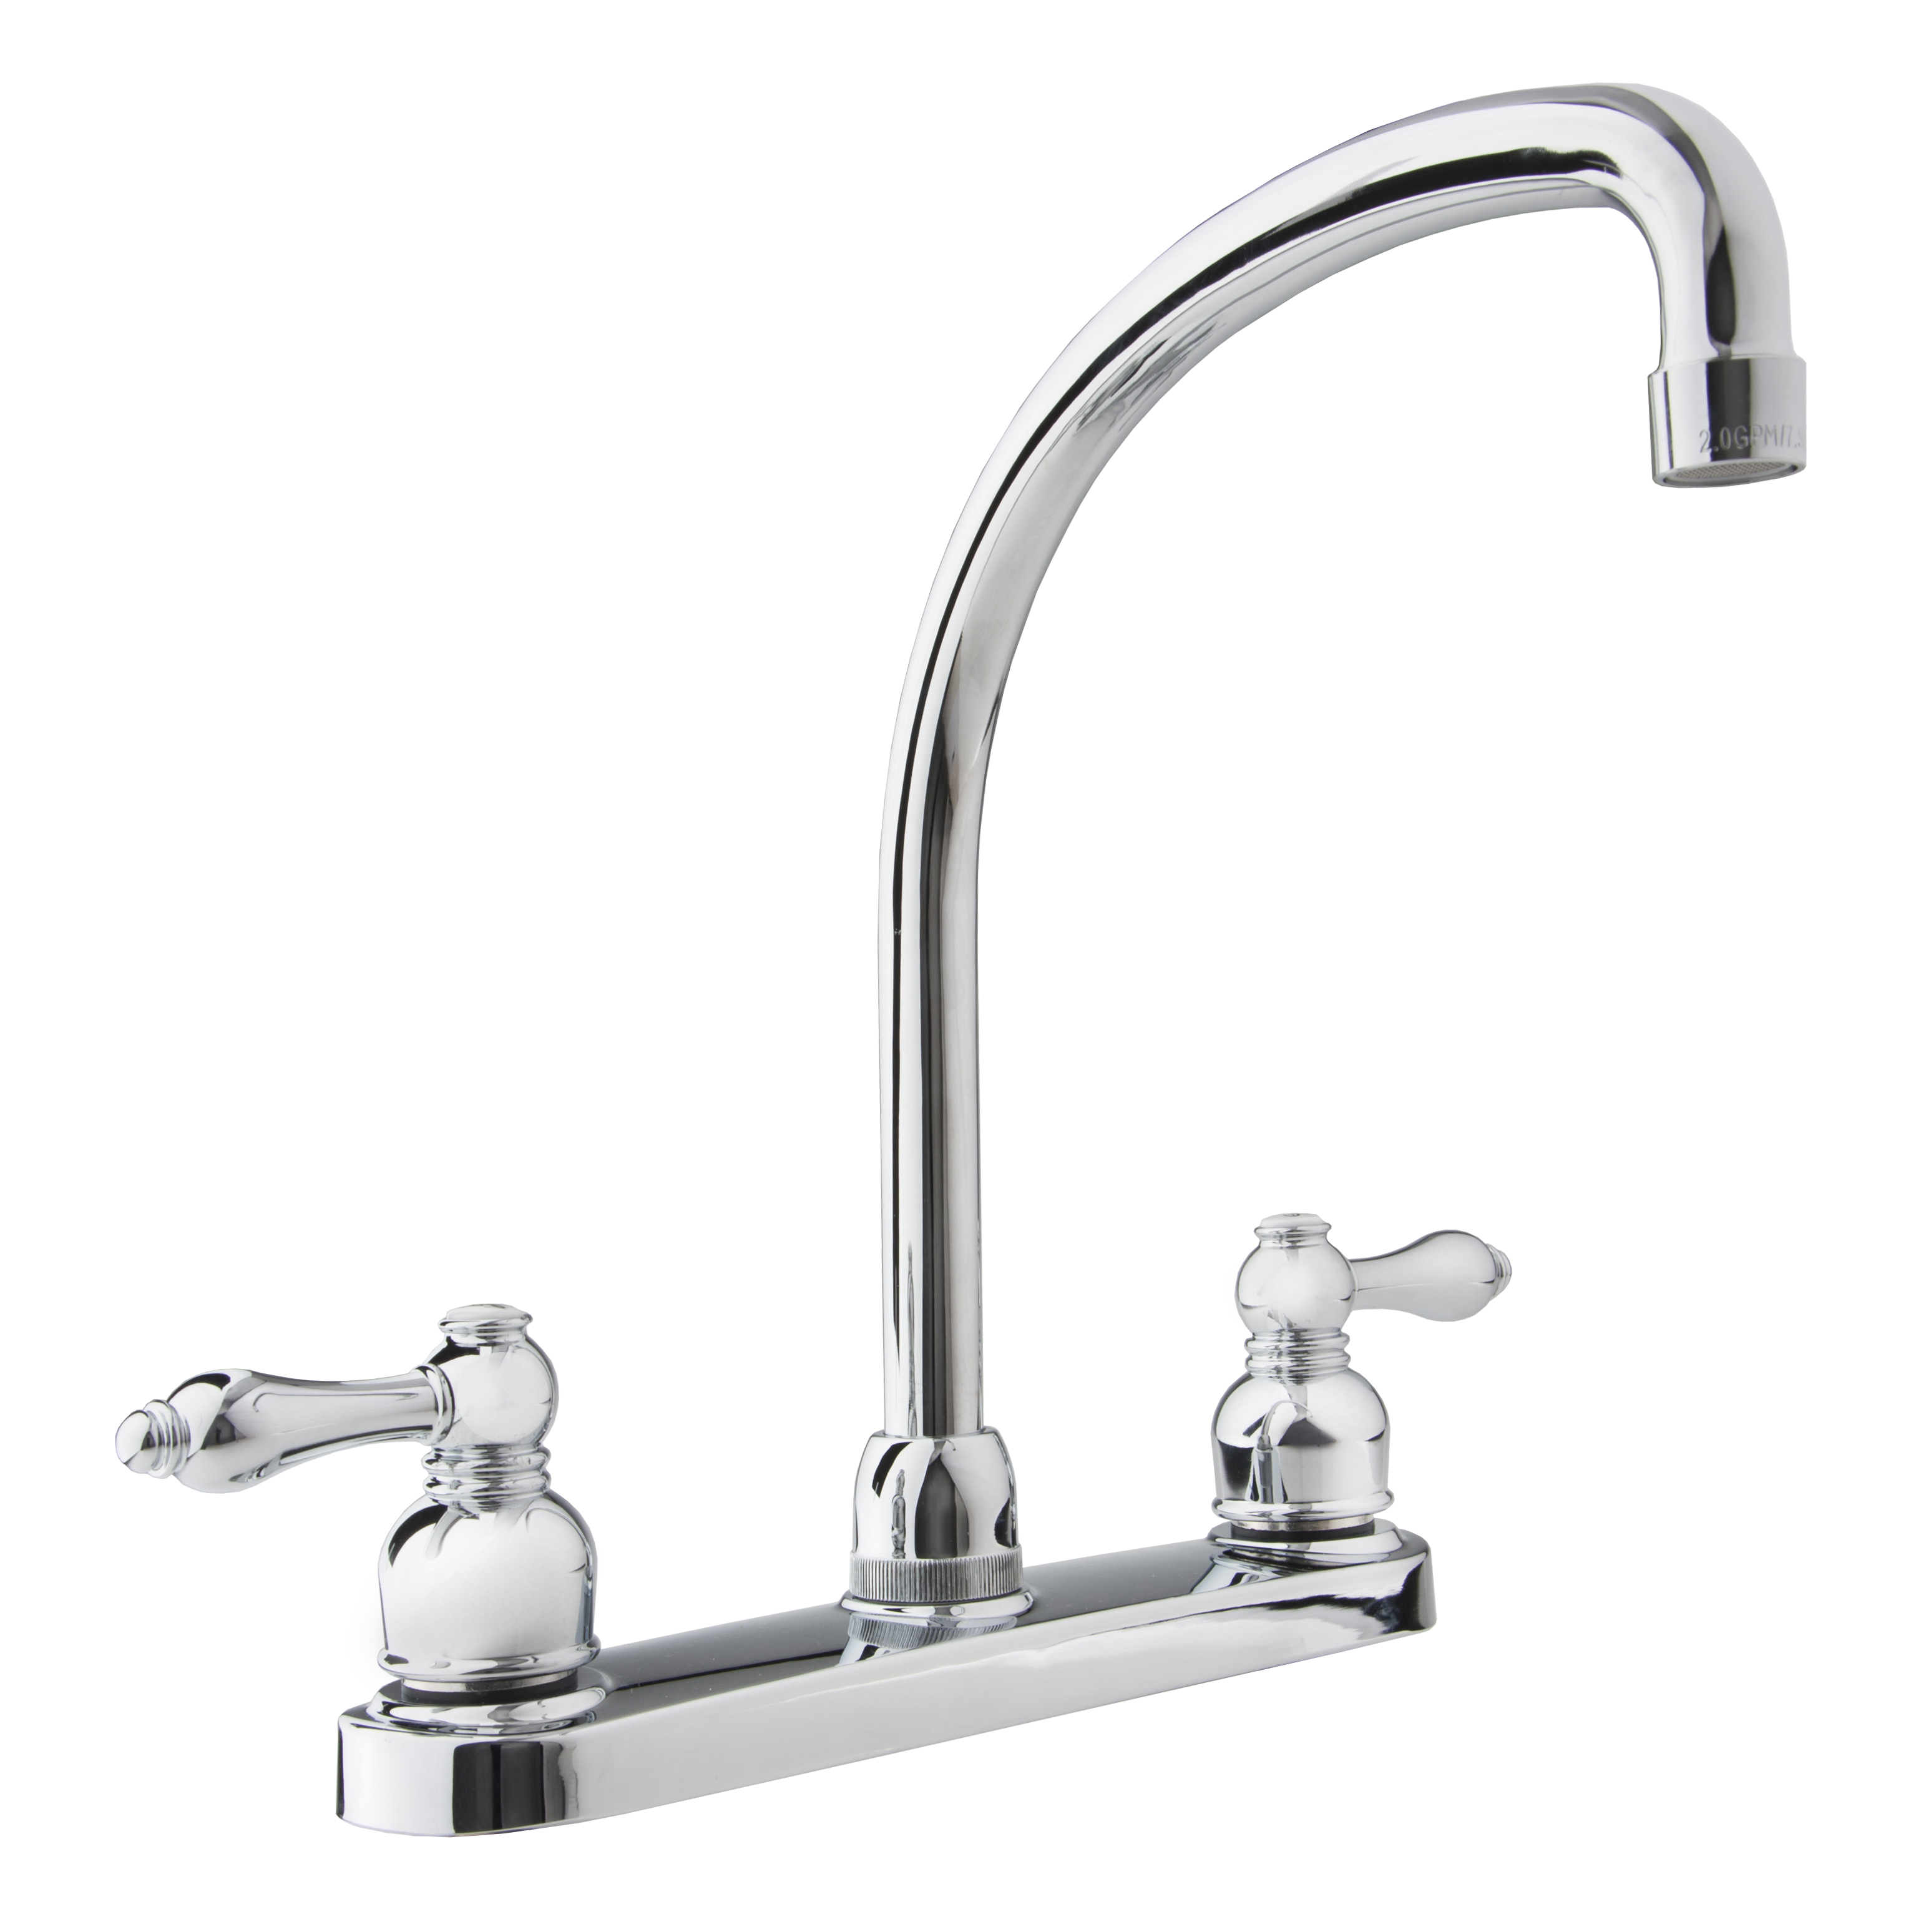 DF-NMK330-CP Dura Faucet Faucet Used For Kitchen